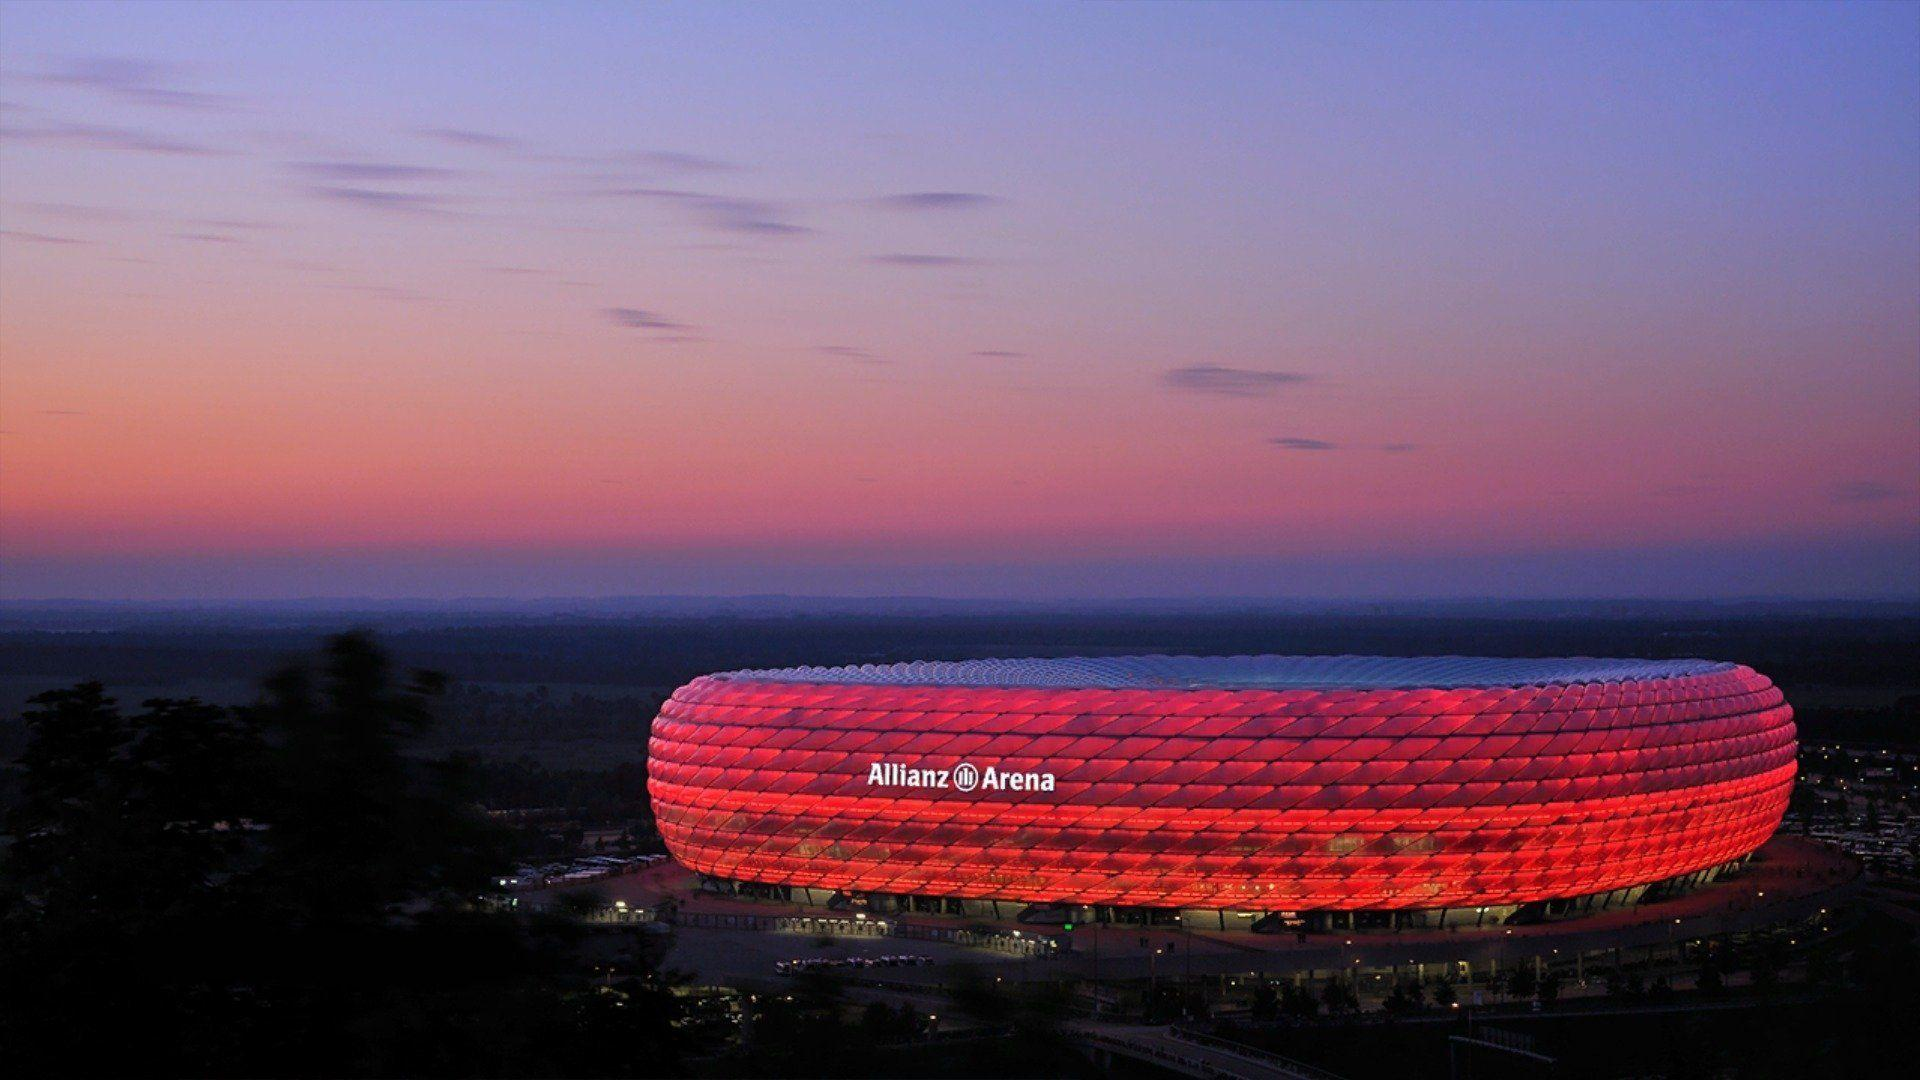 allianz arena wallpapers wallpaper cave. Black Bedroom Furniture Sets. Home Design Ideas